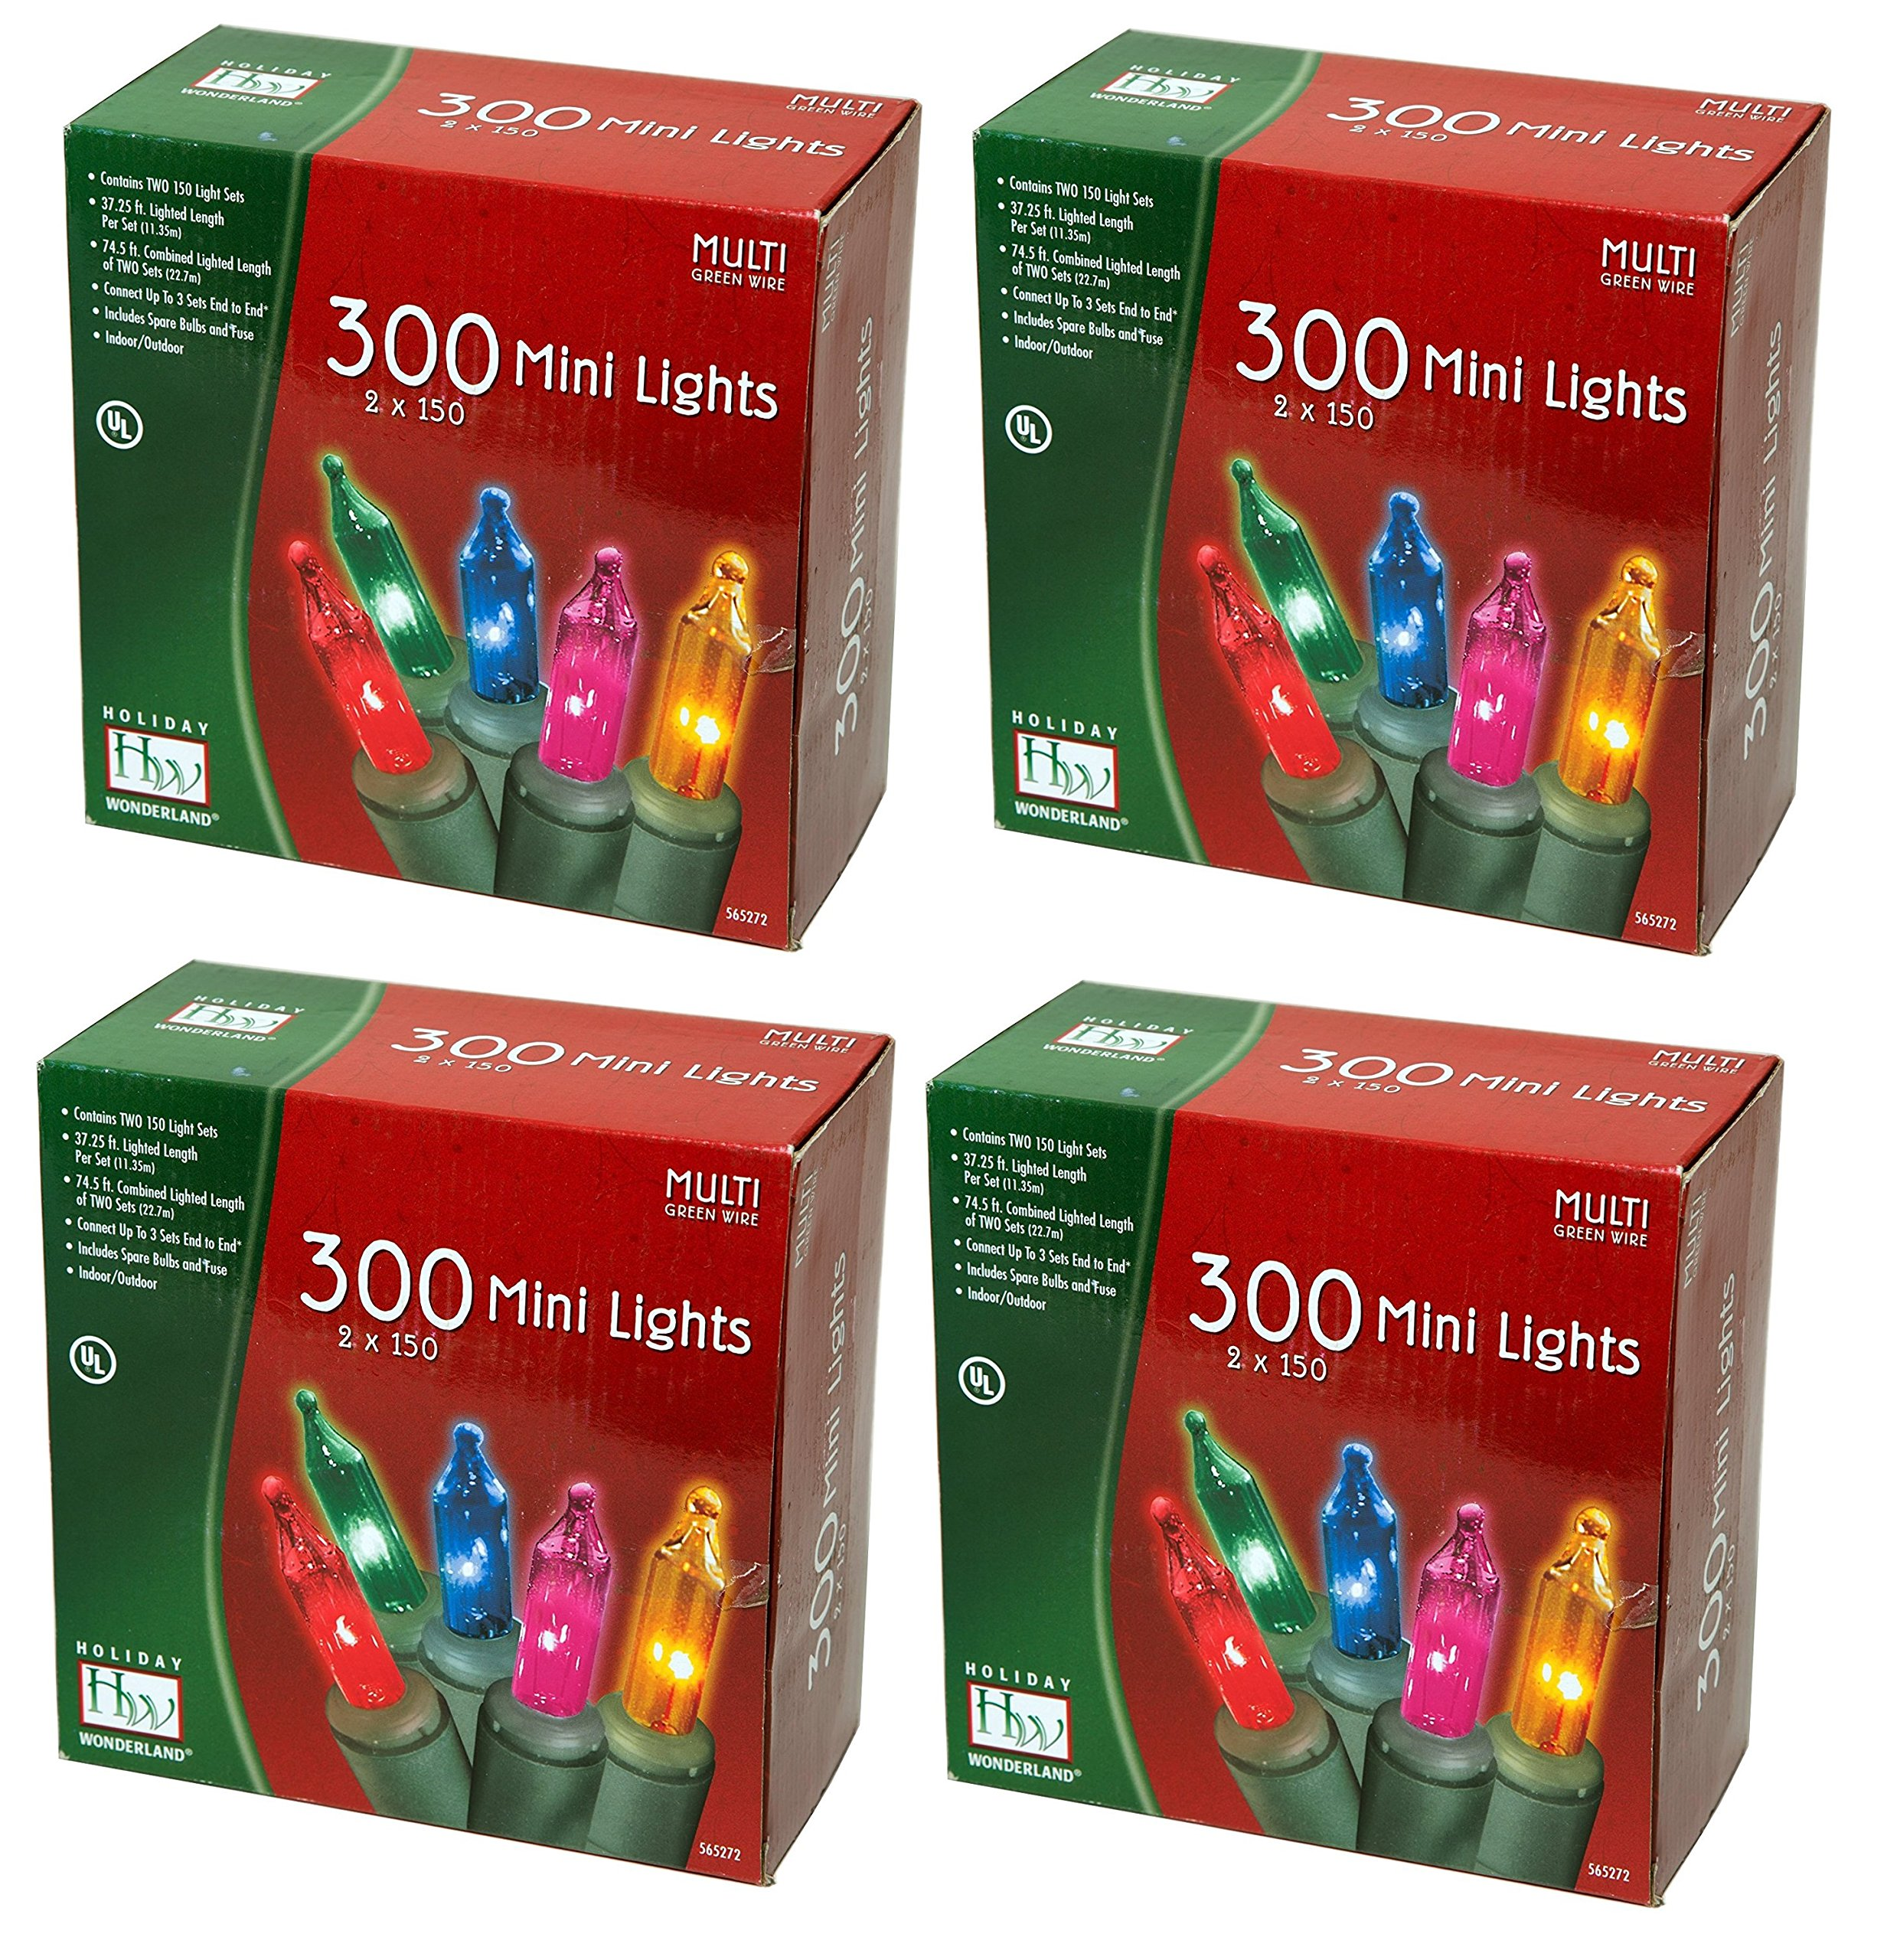 Noma/Inliten Holiday Wonderland's 300 Mini Lights Set (Pack of 4) by Noma/Inliten